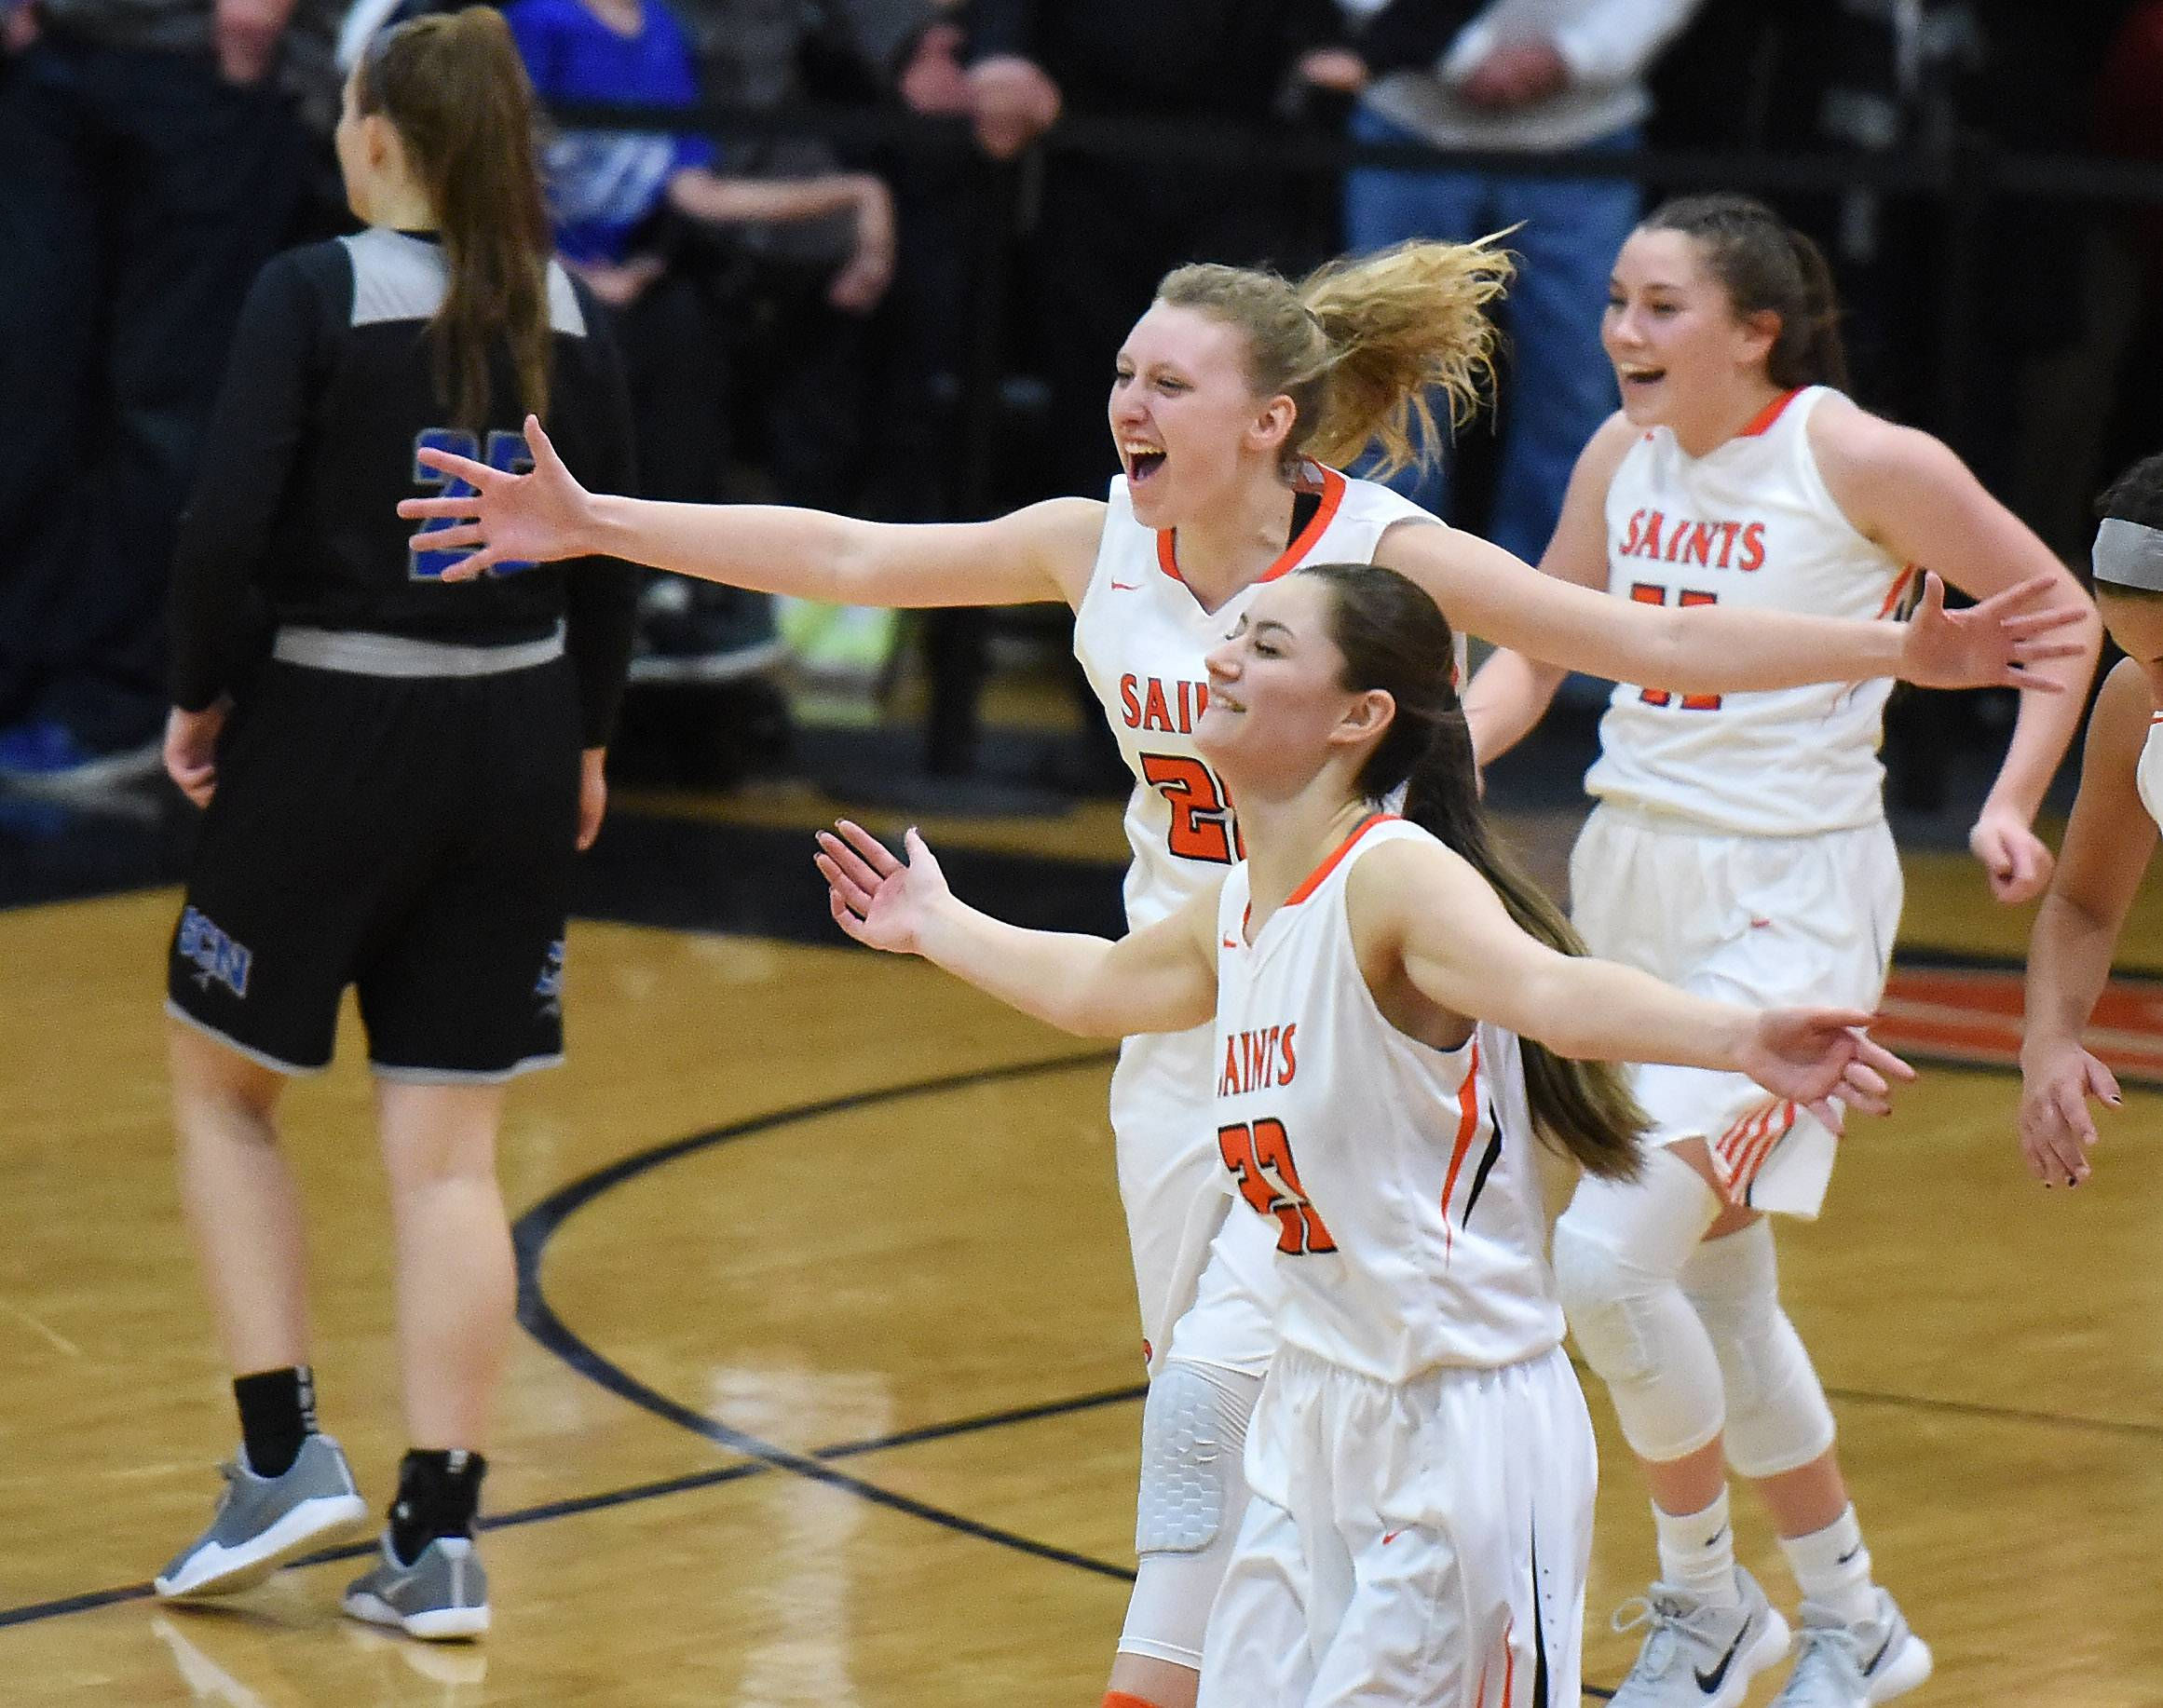 St. Charles East players, including Alexis Kiefer, top middle, and Katherine Weinzirl, bottom, celebrate after their win over St. Charles North during Friday's game at East.